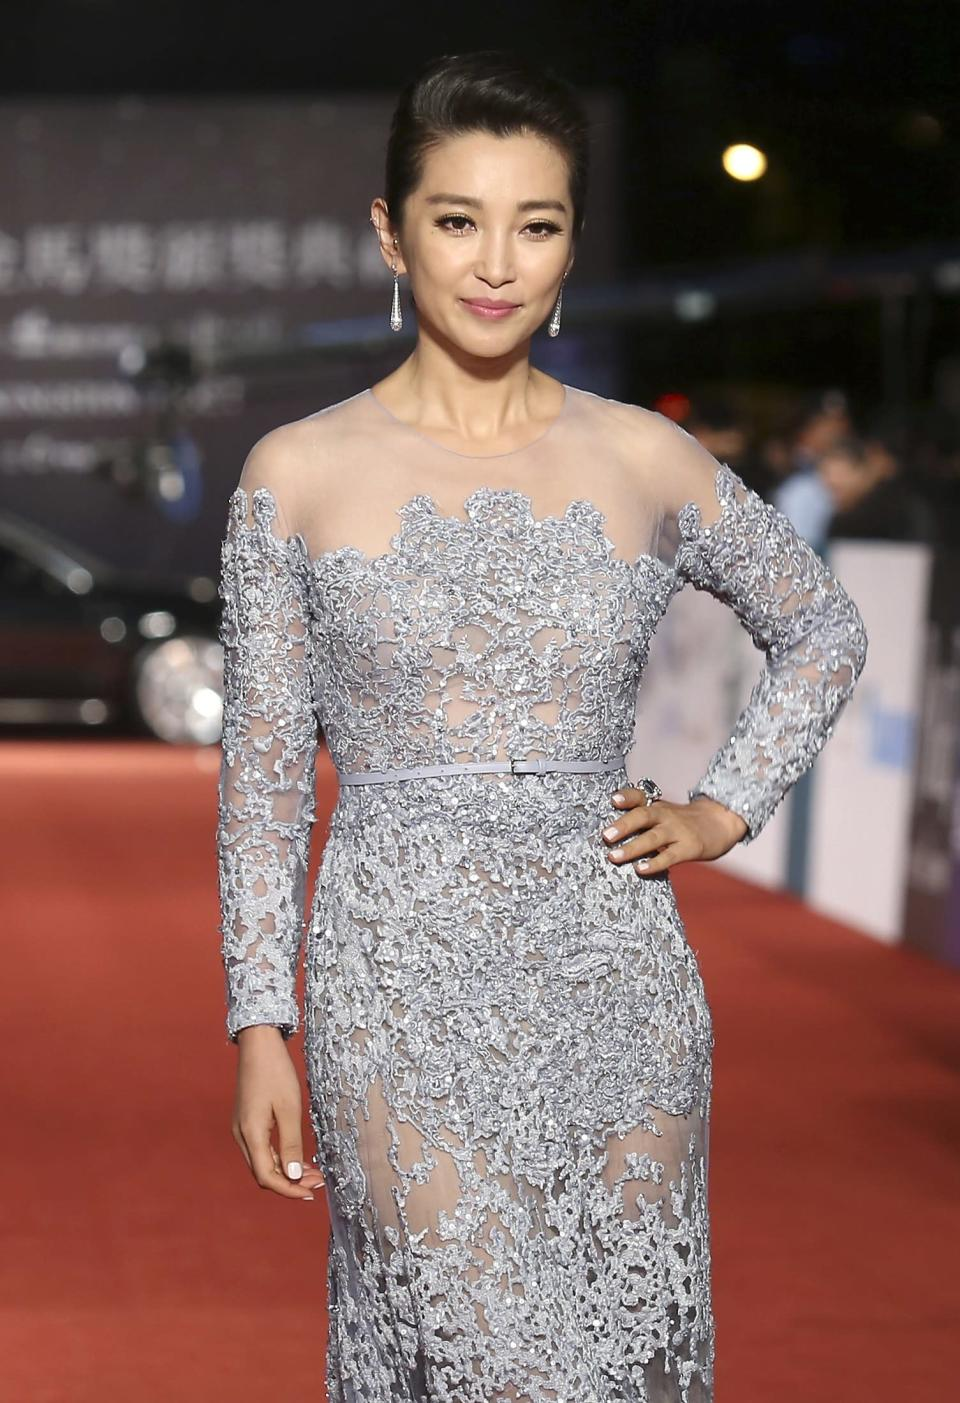 Chinese actress Li Bingbing poses for photographers on the red carpet at the 50th Golden Horse Film Awards in Taipei November 23, 2013. REUTERS/Patrick Lin (TAIWAN - Tags: ENTERTAINMENT)